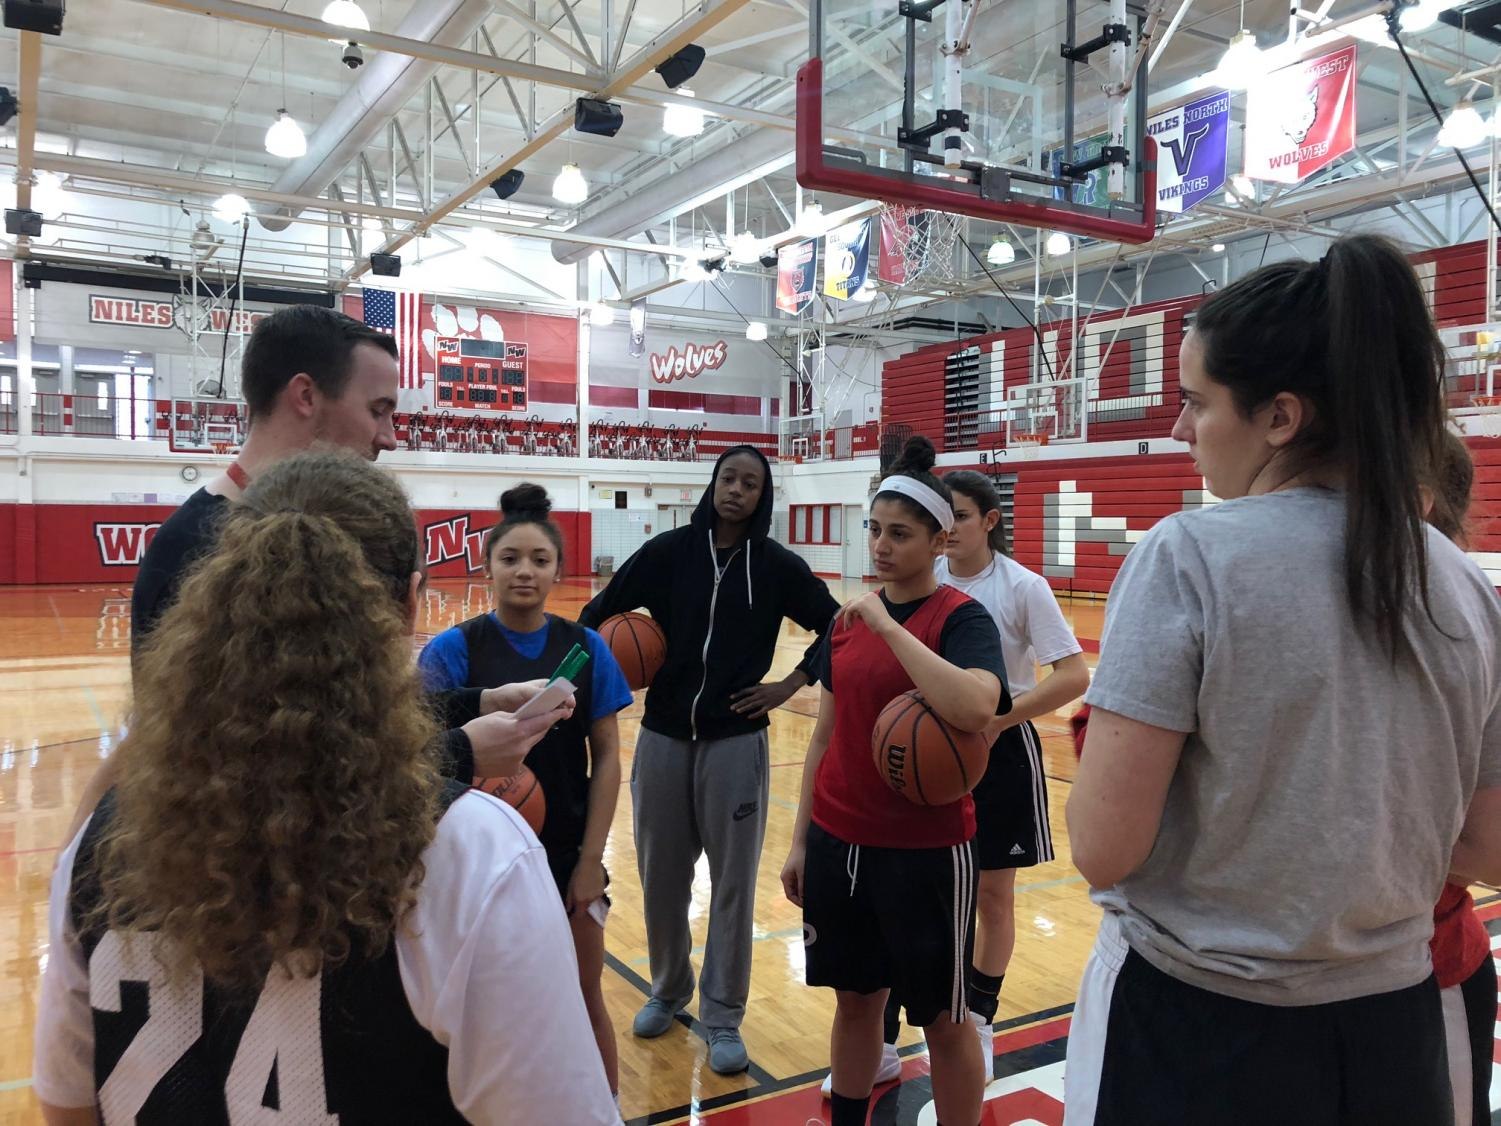 WNBA star and Niles West alumna Jewell Loyd has been assistant coaching the girls varsity basketball team on Jan. 11. Photo by Katerina Paulos.